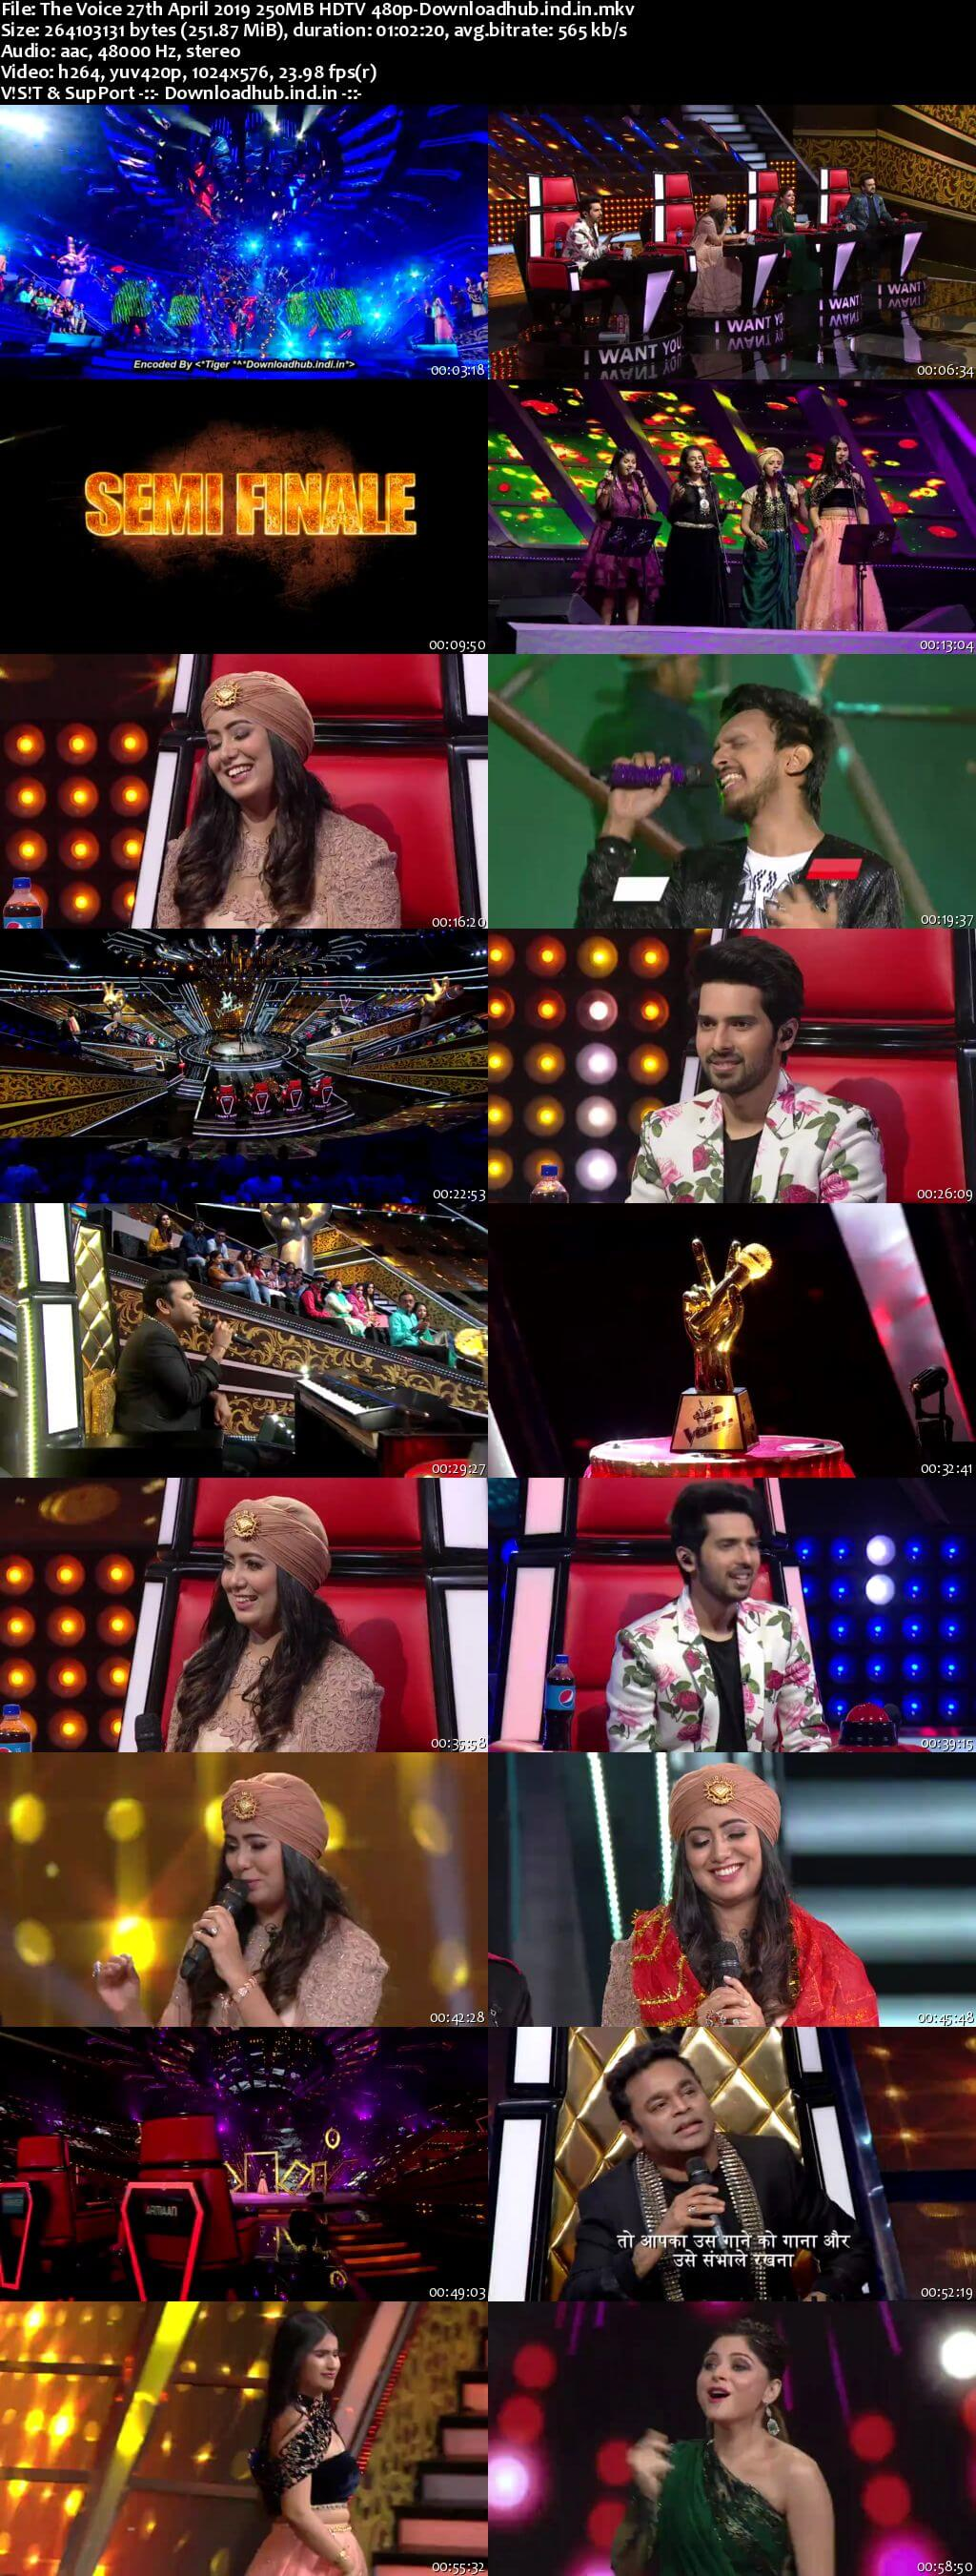 The Voice 27 April 2019 Episode 24 HDTV 480p